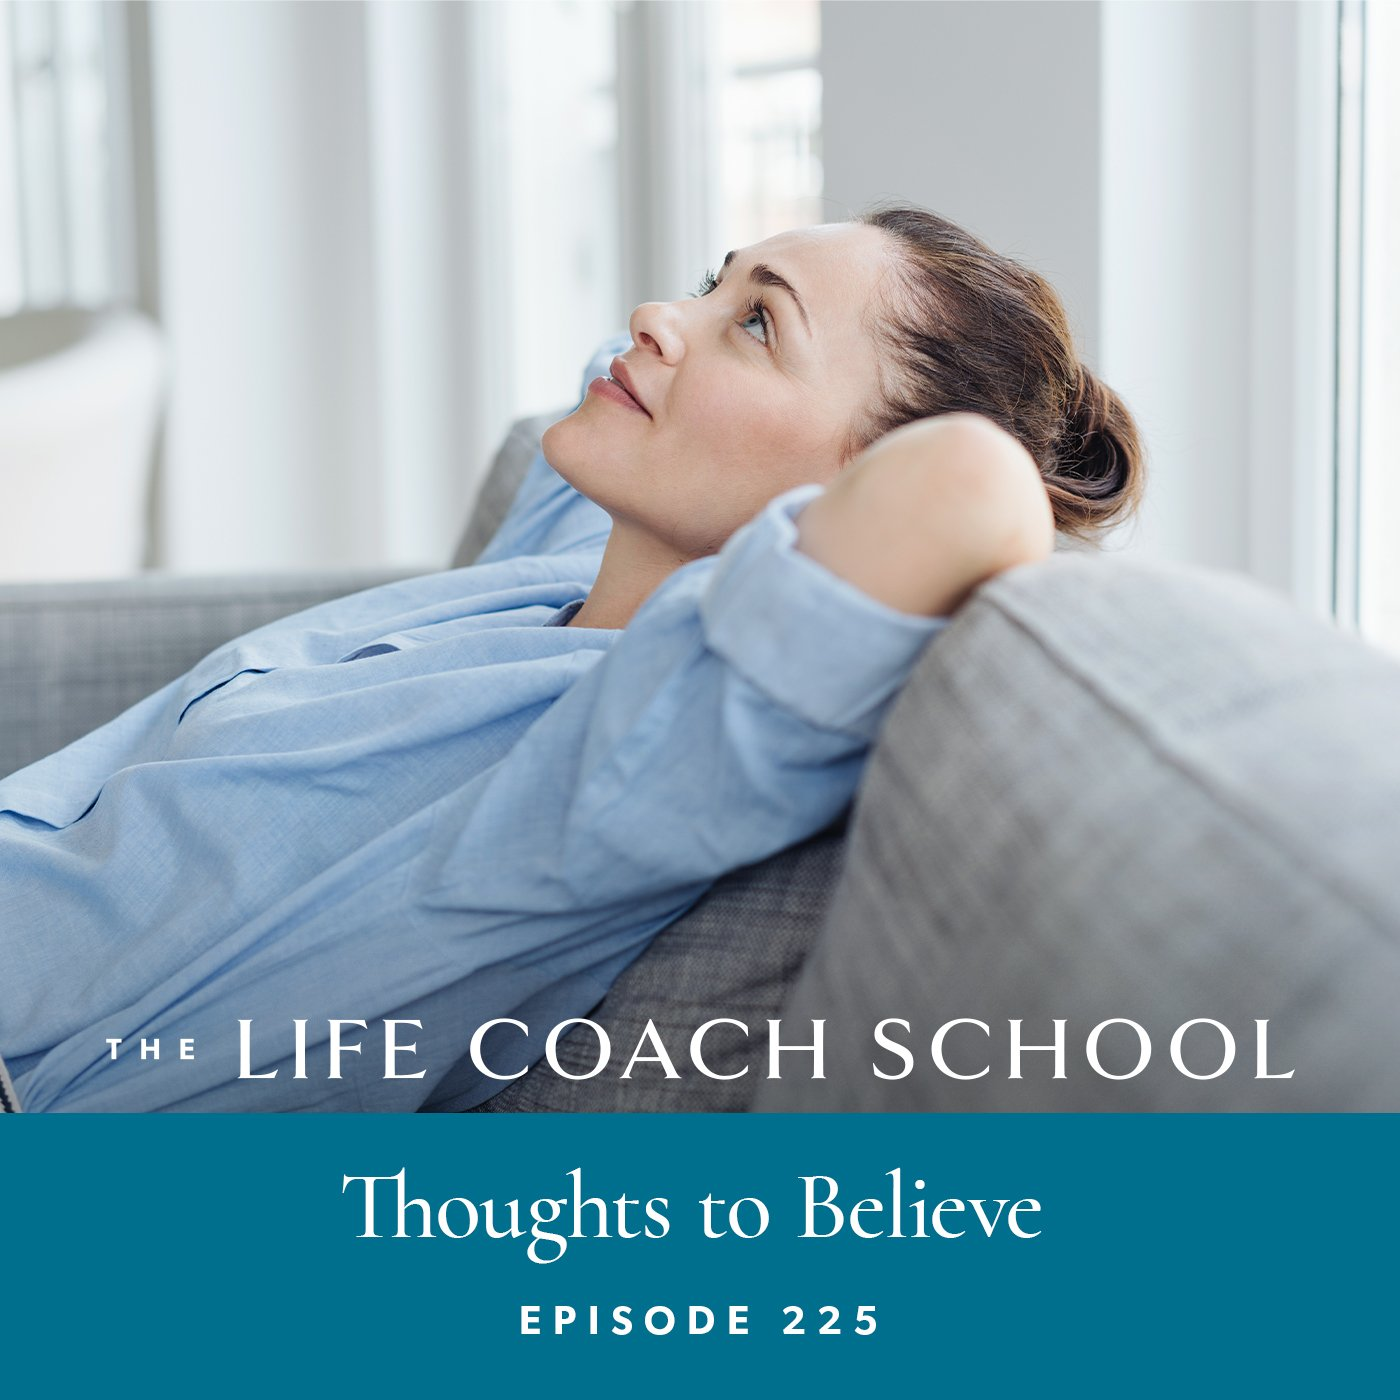 The Life Coach School Podcast with Brooke Castillo | Episode 225 | Thoughts to Believe